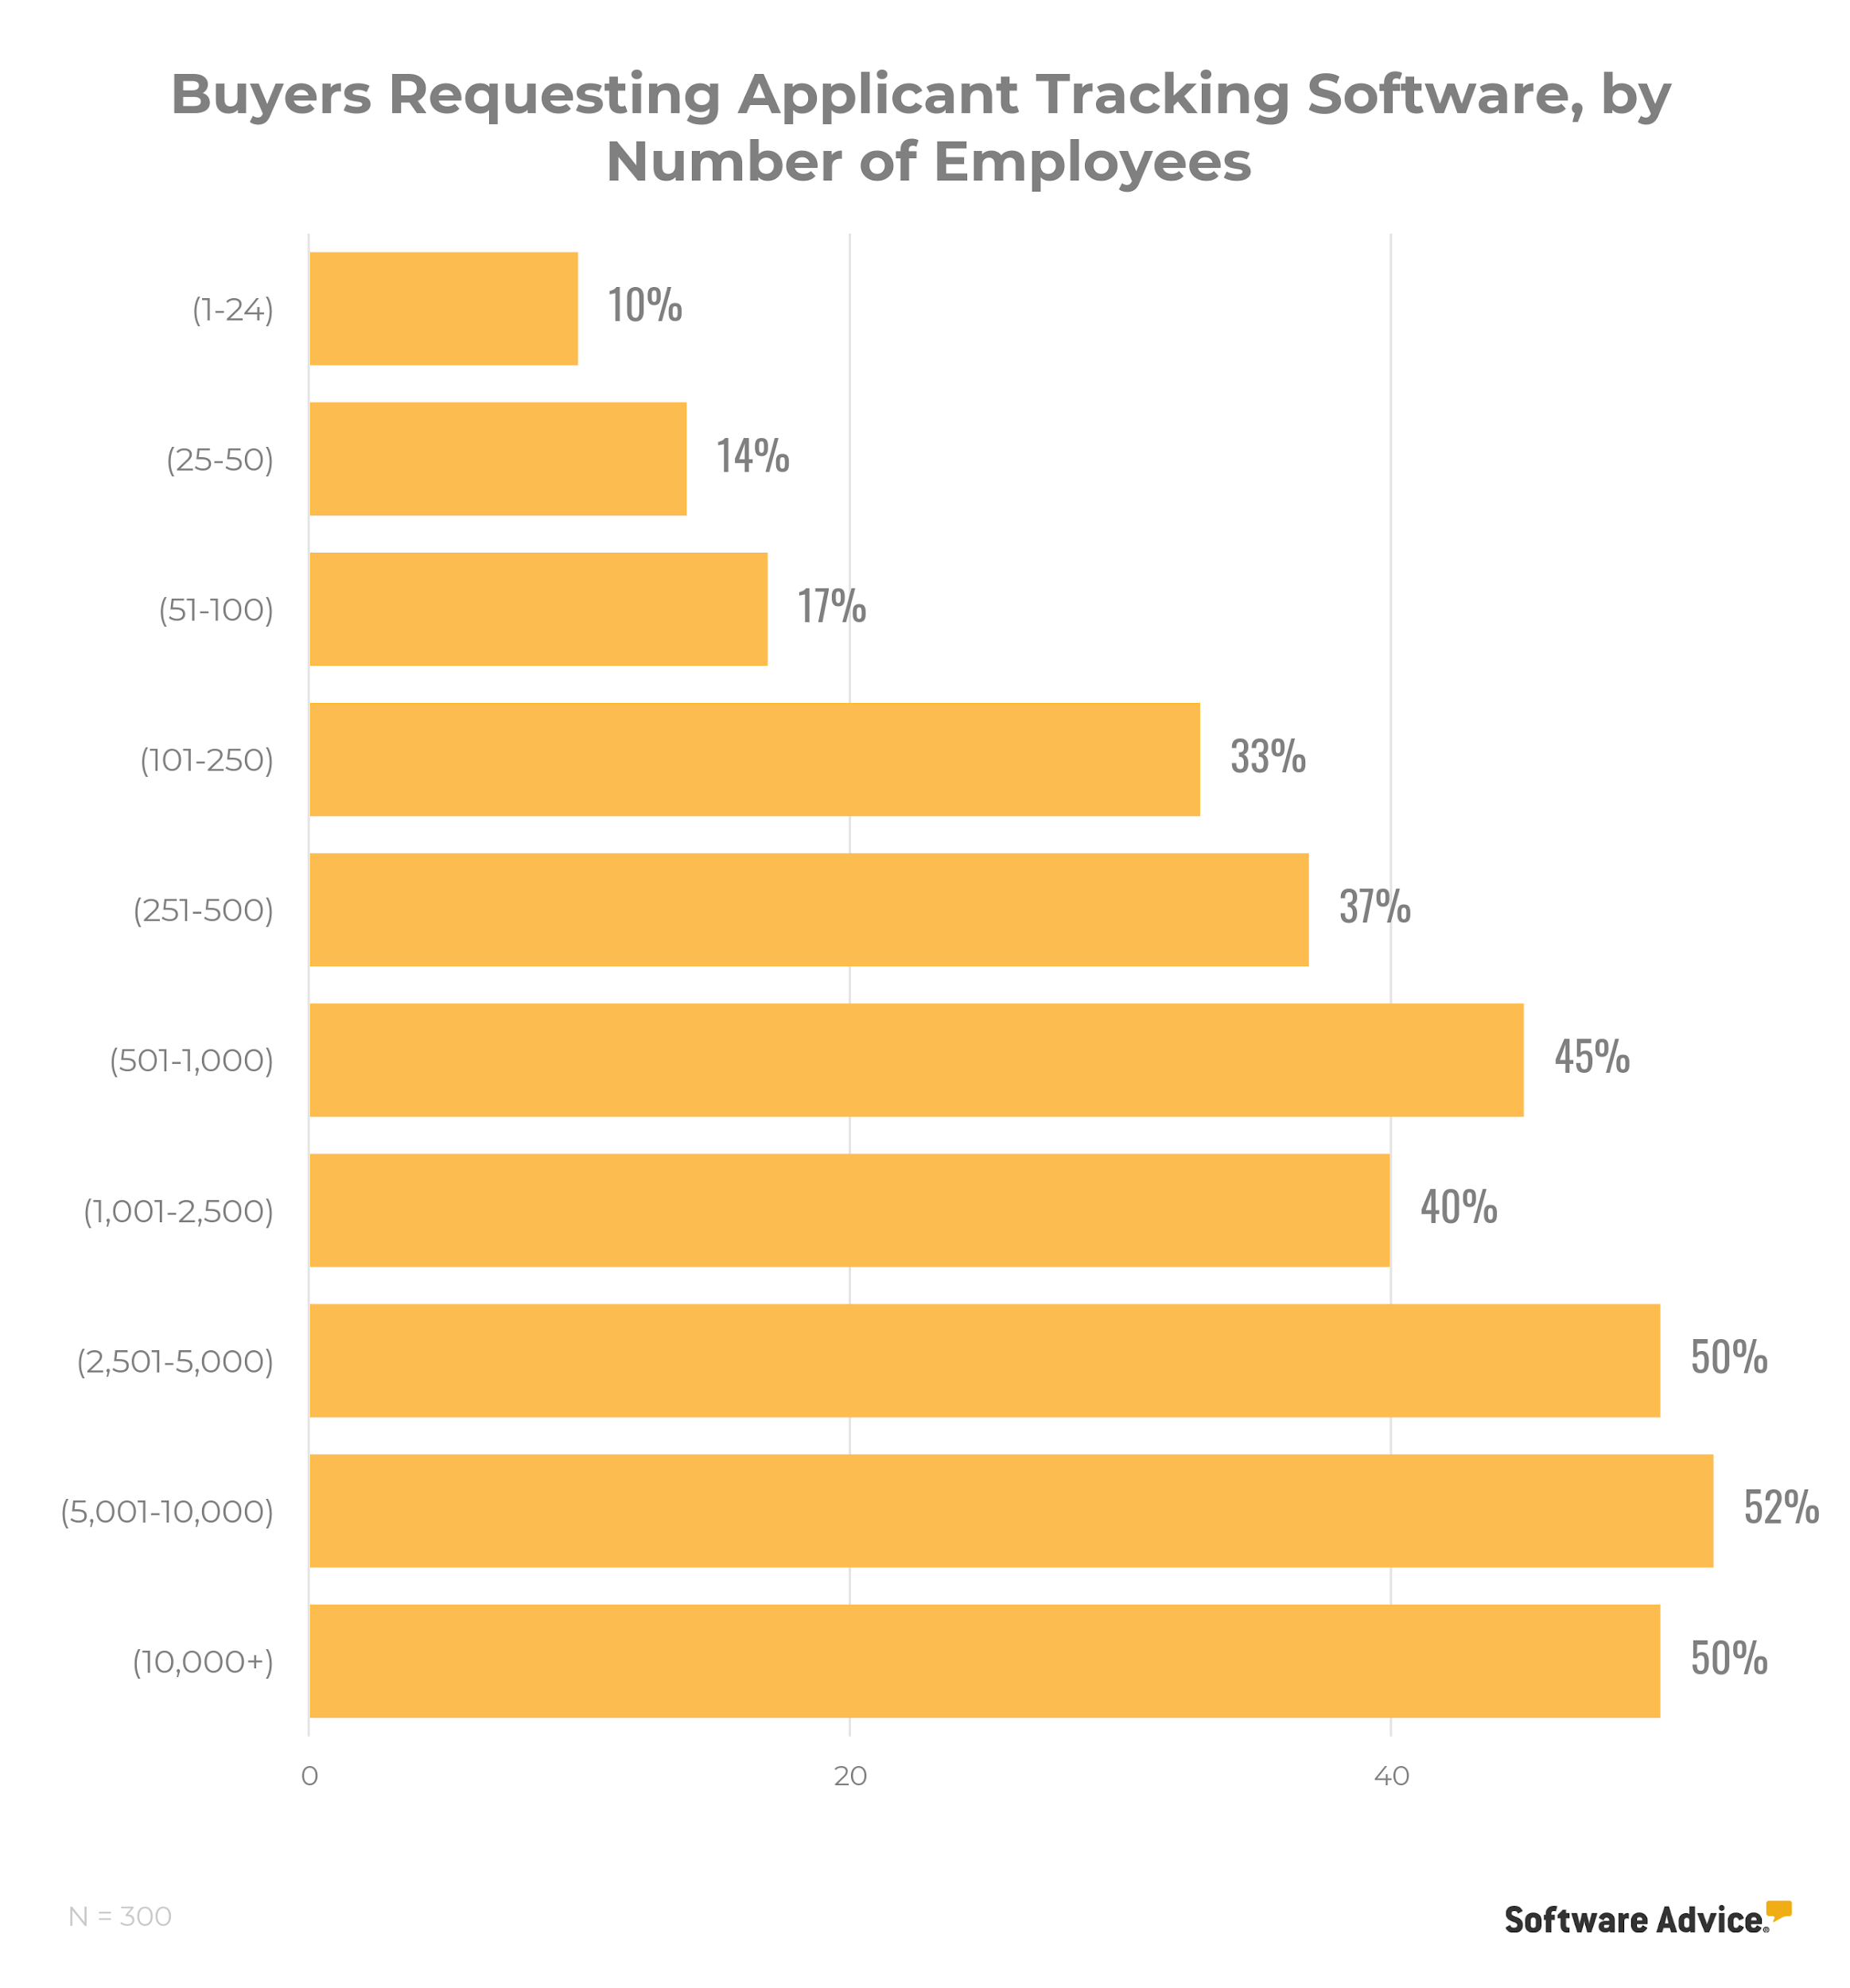 chart showing applicant tracking software is the most requested HR application for businesses with anywhere from 251 to 5,001+ employees